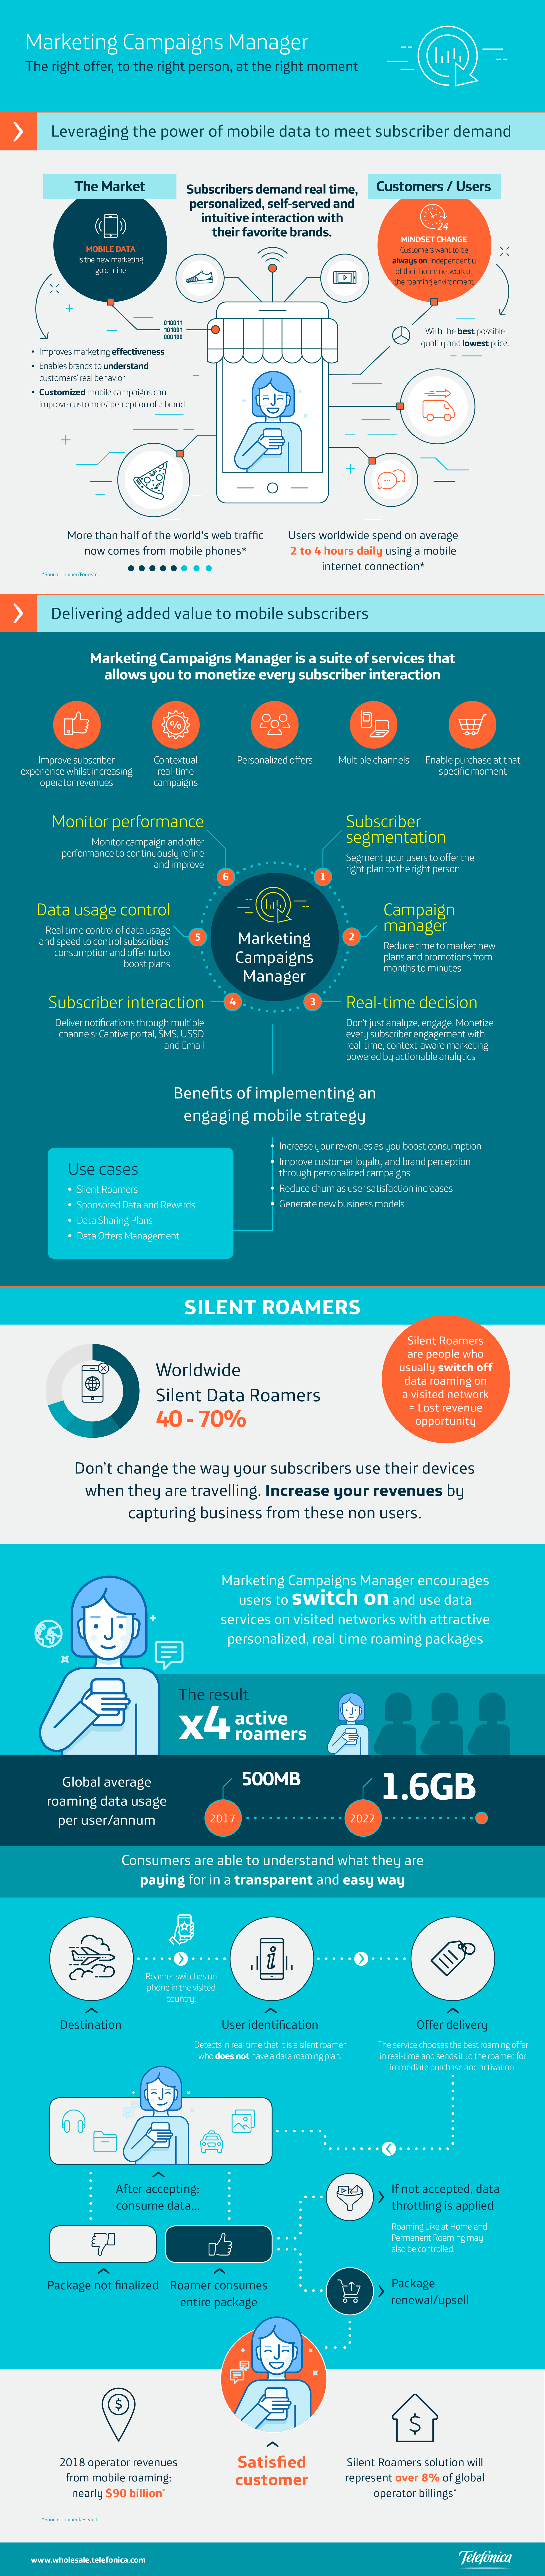 Increase revenues by capturing business from silent roamers